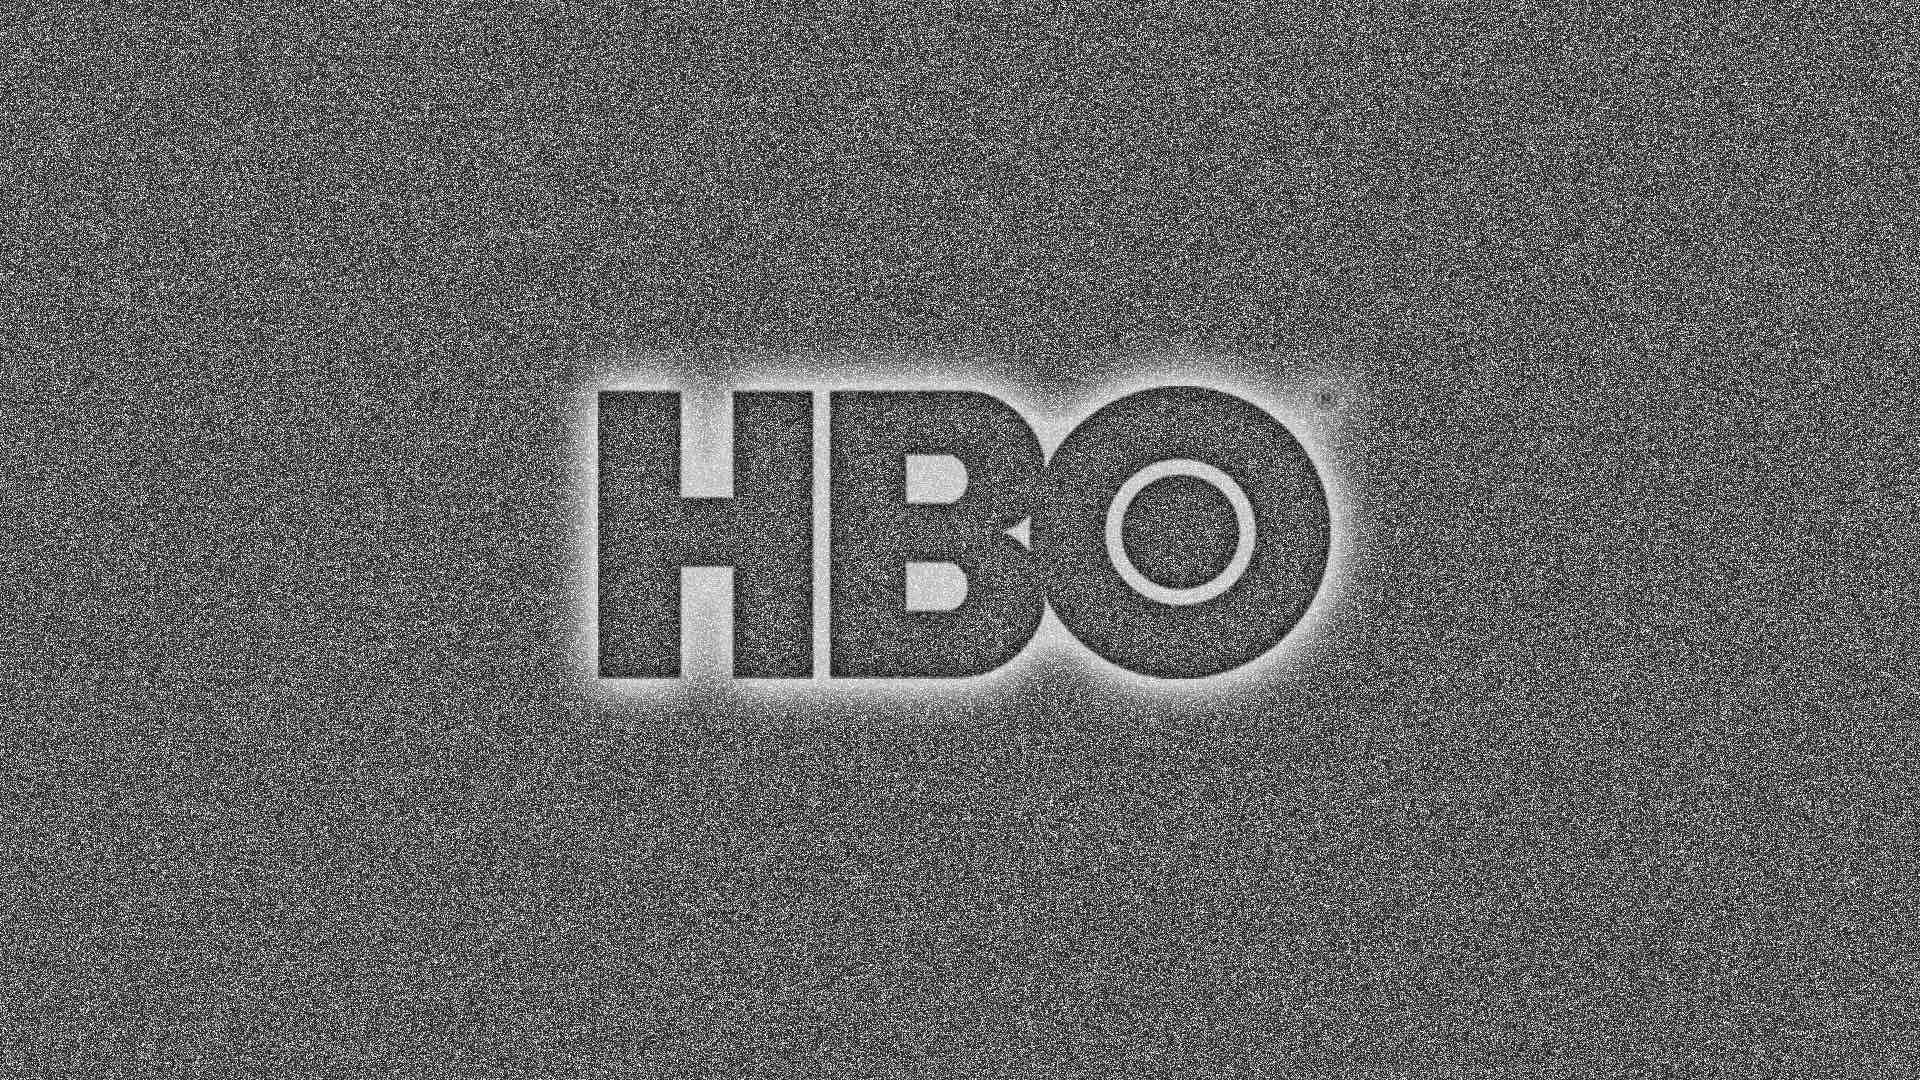 AT&T—owner of HBO and DirecTV—lets HBO go dark on Dish in ...